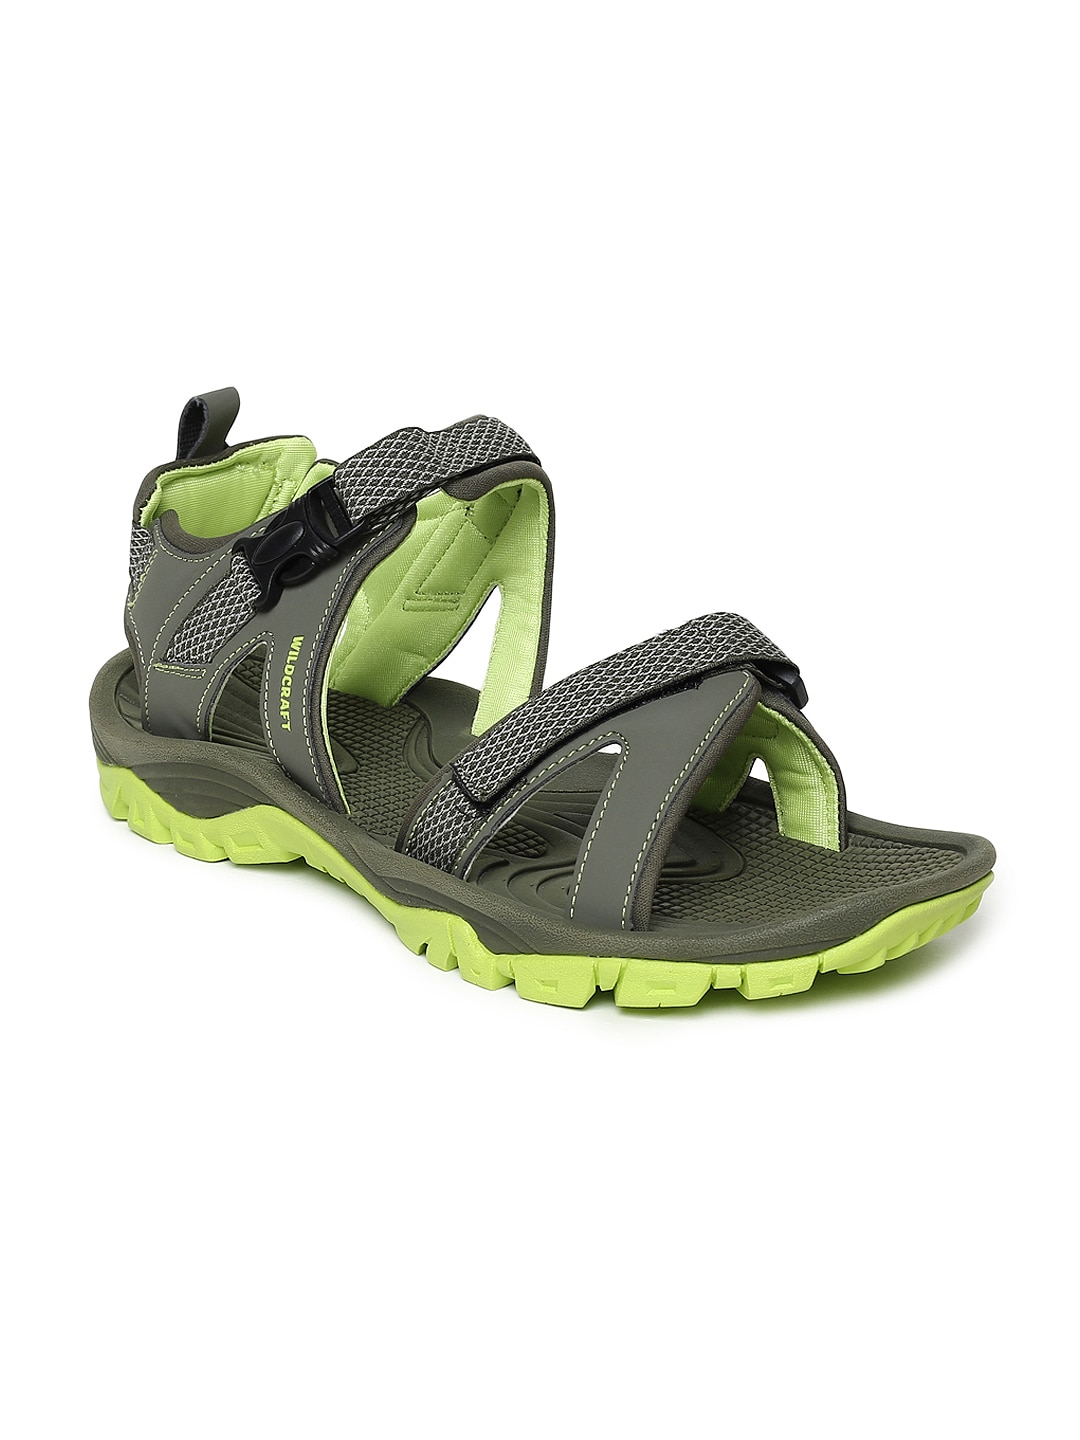 ee1702eb9b0e Wildcraft Sandal - Buy Wildcraft Sandal online in India